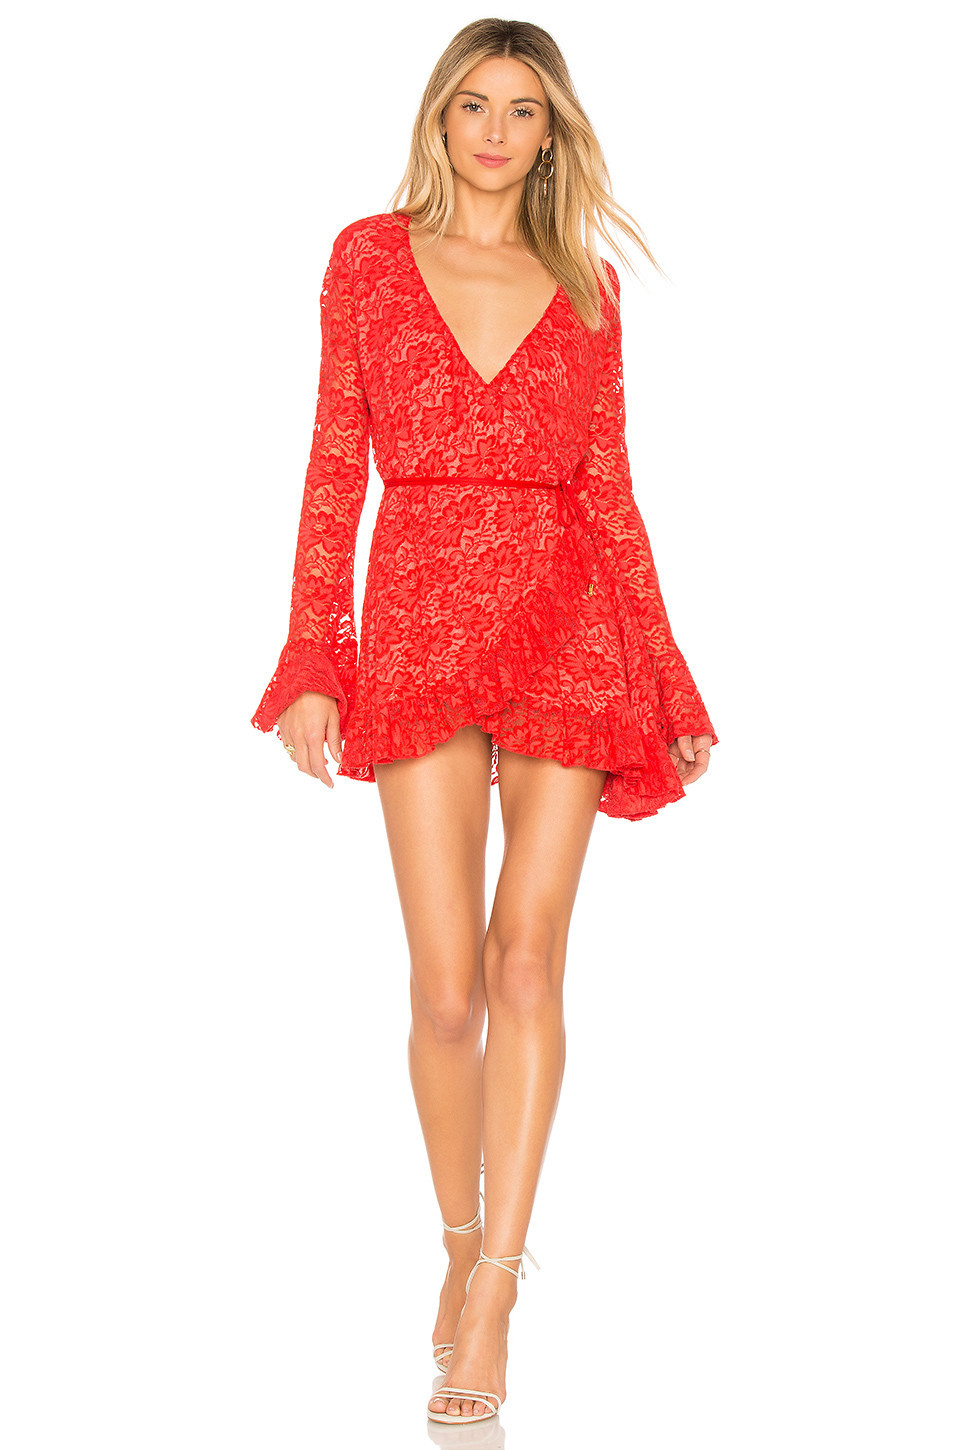 Hot As Hell Wrap Star Dress in red